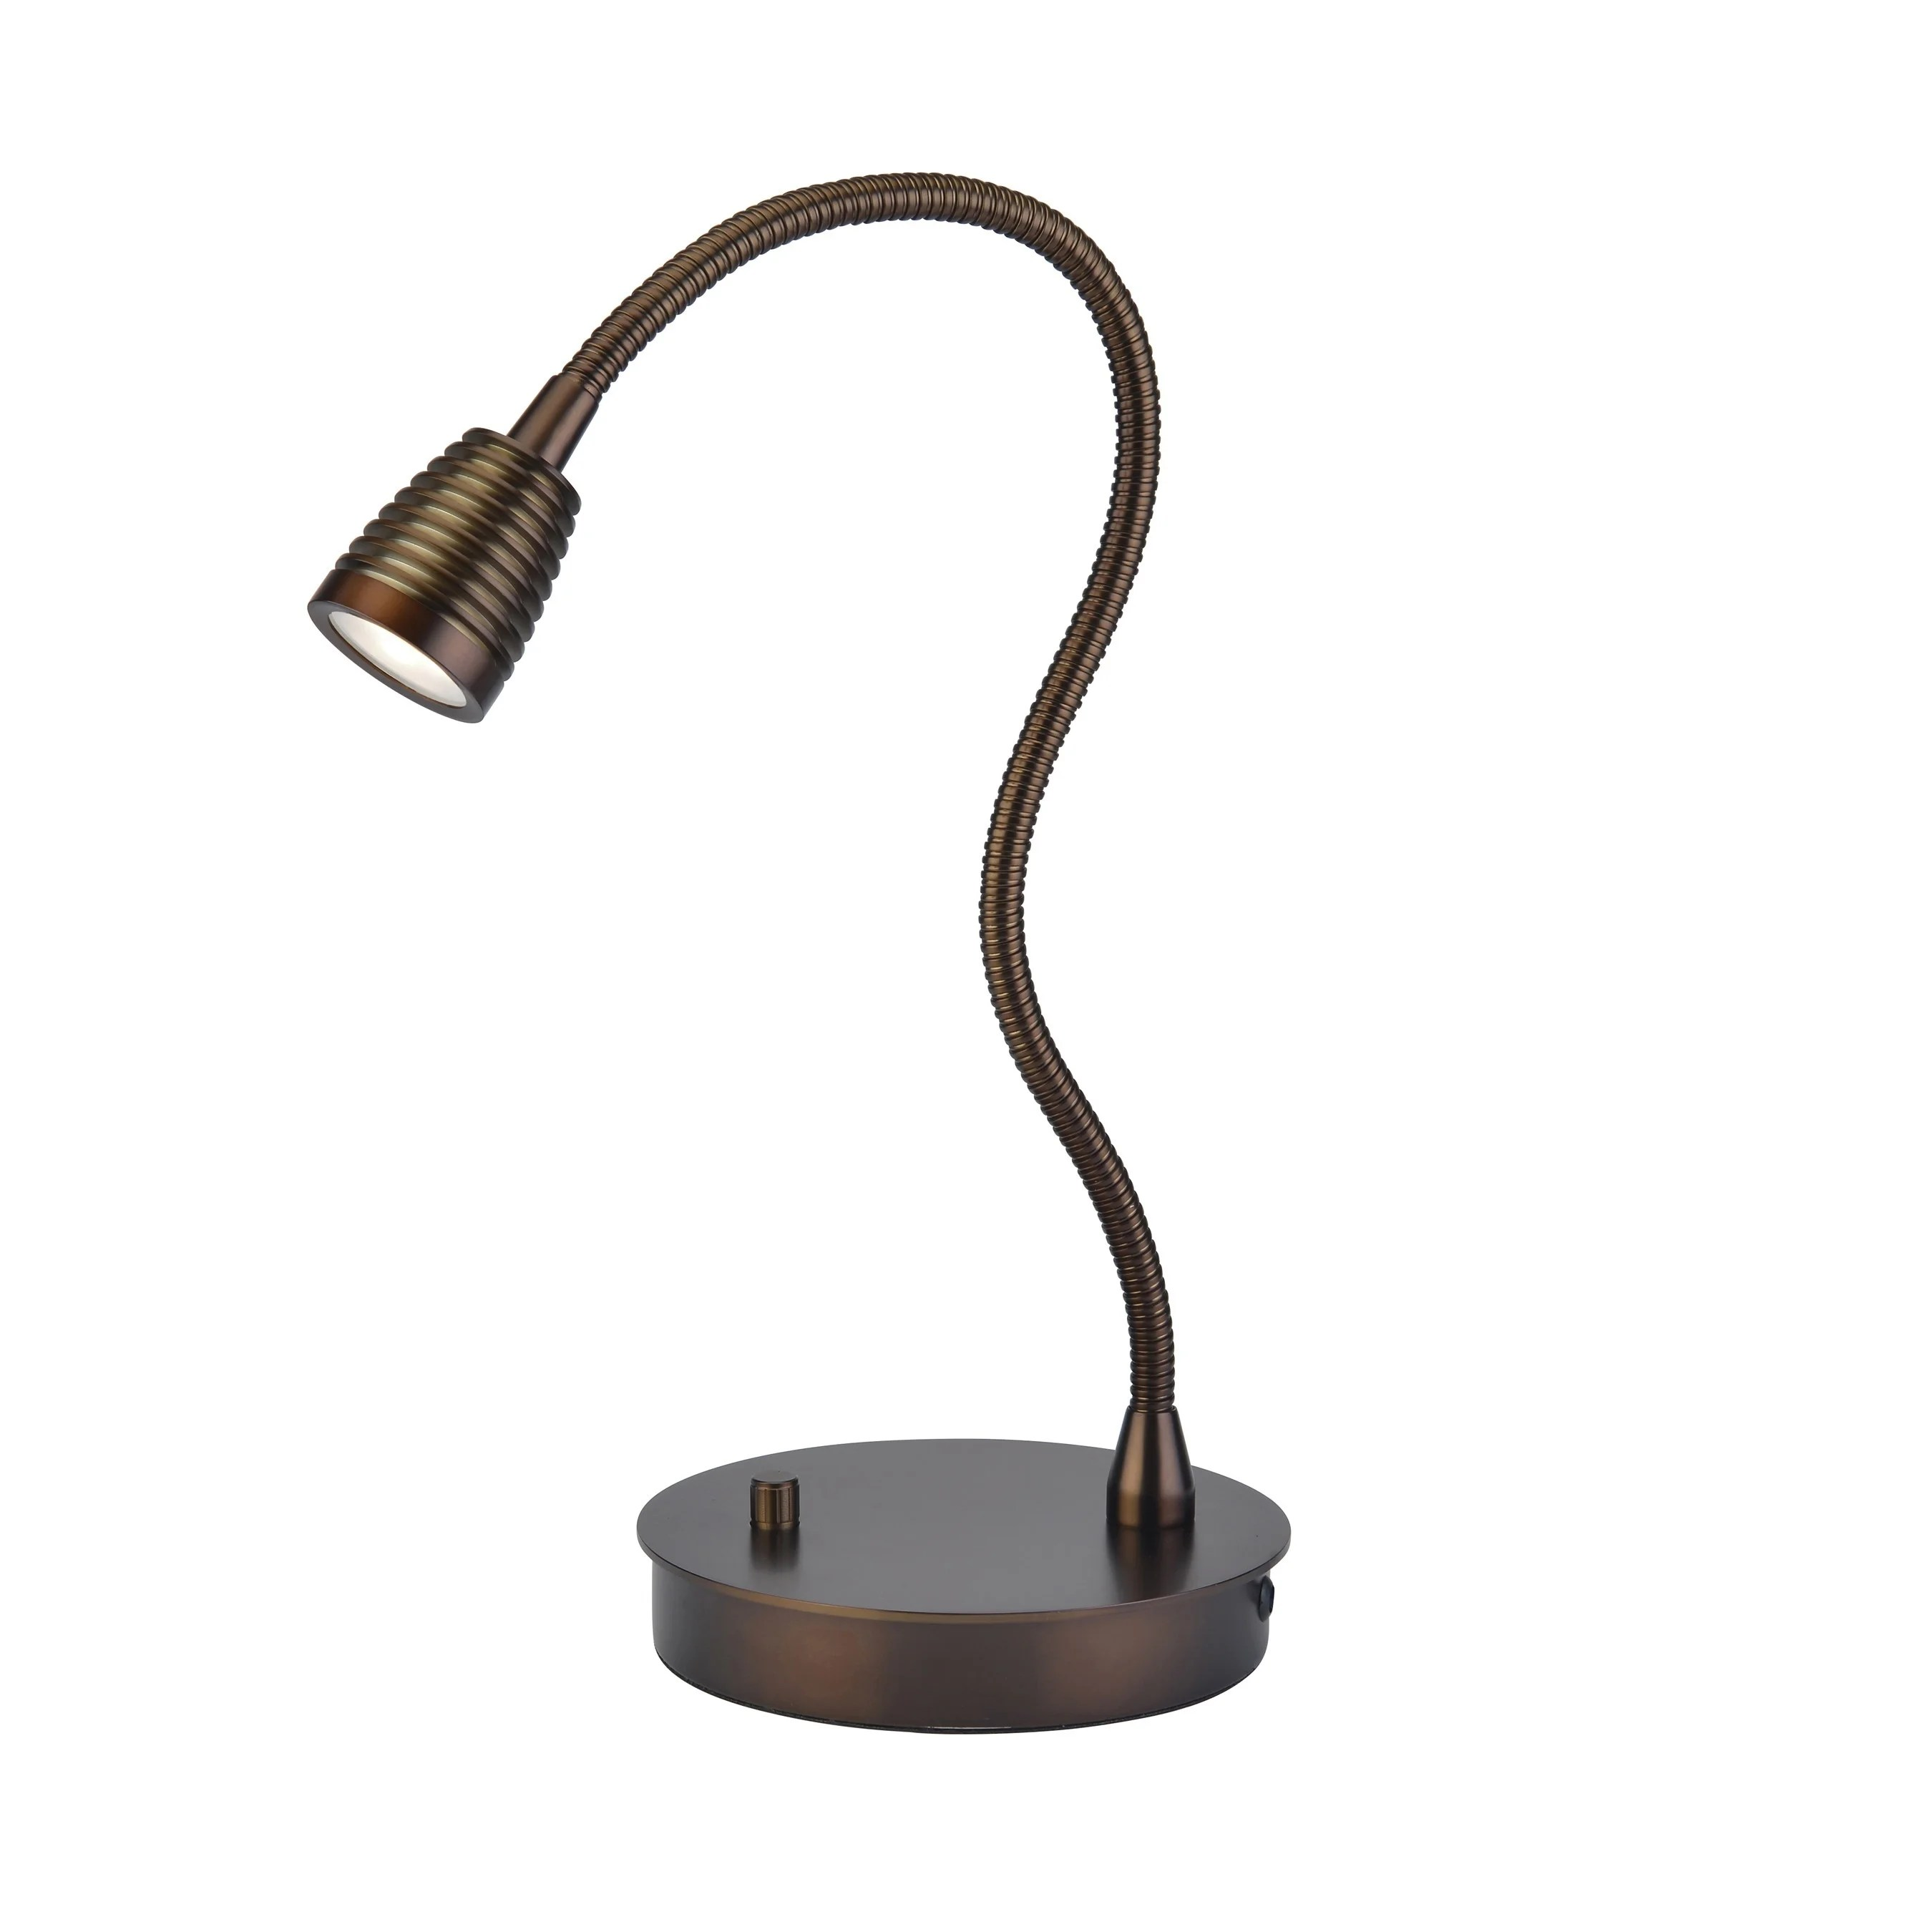 Gooseneck Lighting Access Lighting Taskwerx Bronze Led Gooseneck Task Lamp